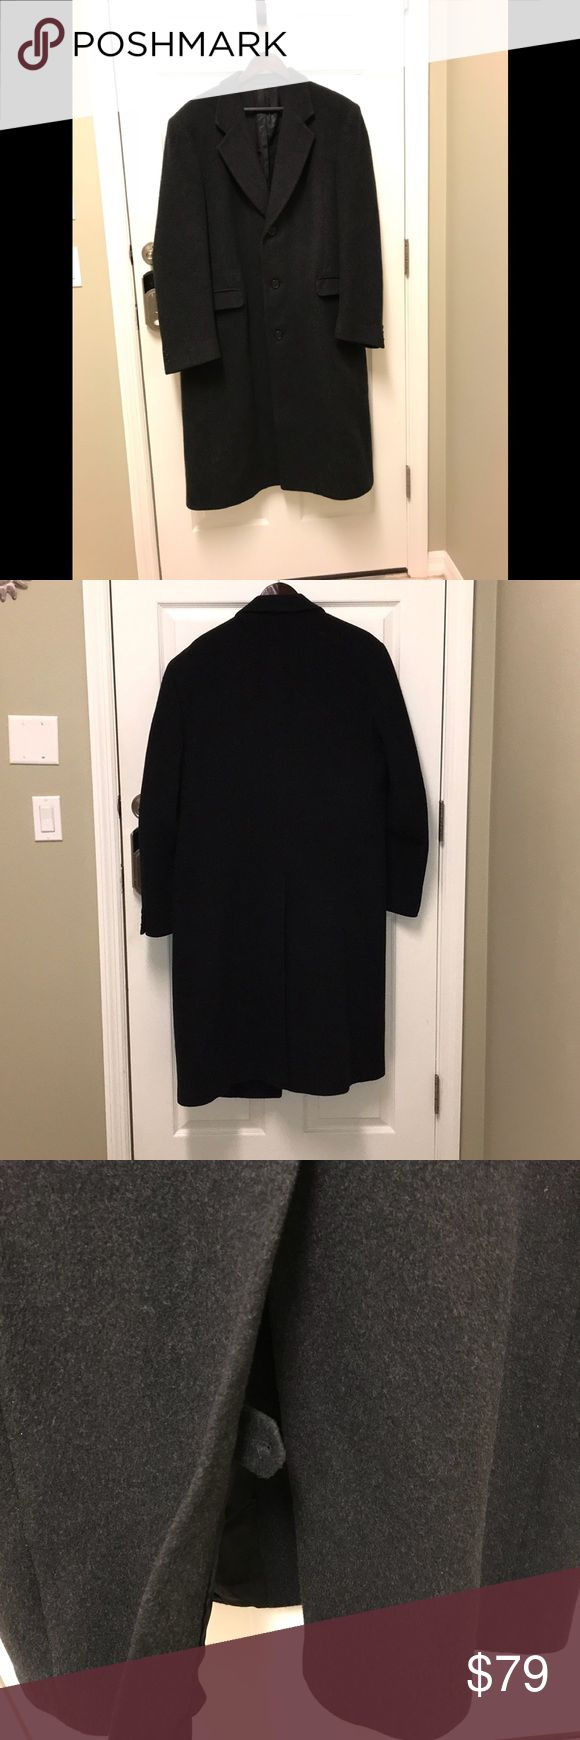 Men's Cashmere Wool Over Coat Men's Nino Cerruti quality Cashmere Wool blend over coat. Charcoal Gray. black lining. Great condition. One broken button on cuff. Made in Brazil. Dry Clean. Nino Cerruti Jackets & Coats